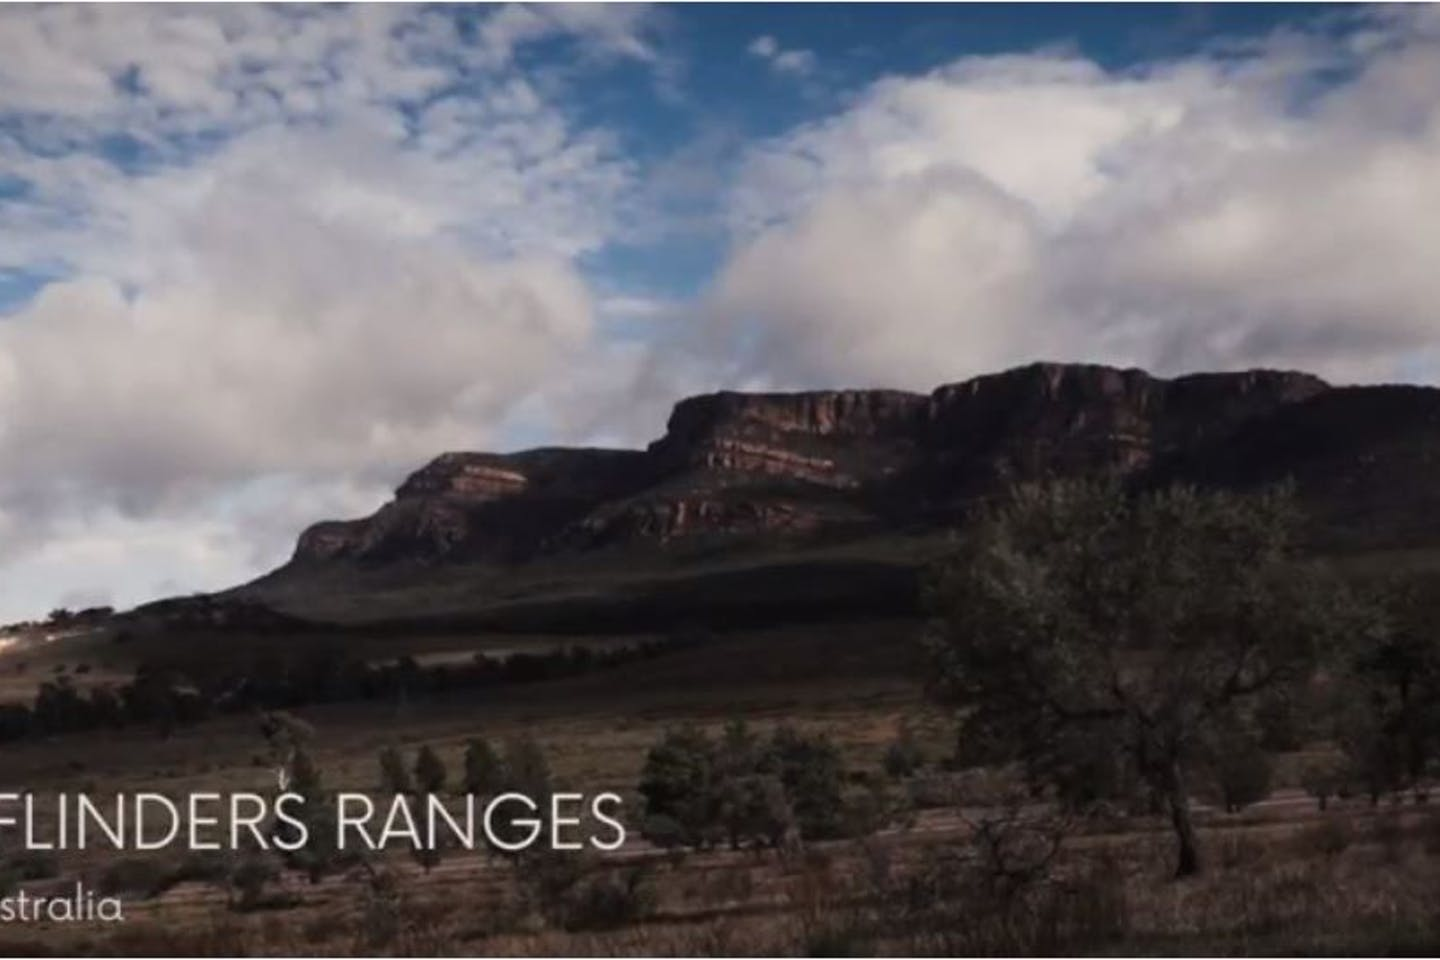 Screen Grab: Flinders Ranges Australia